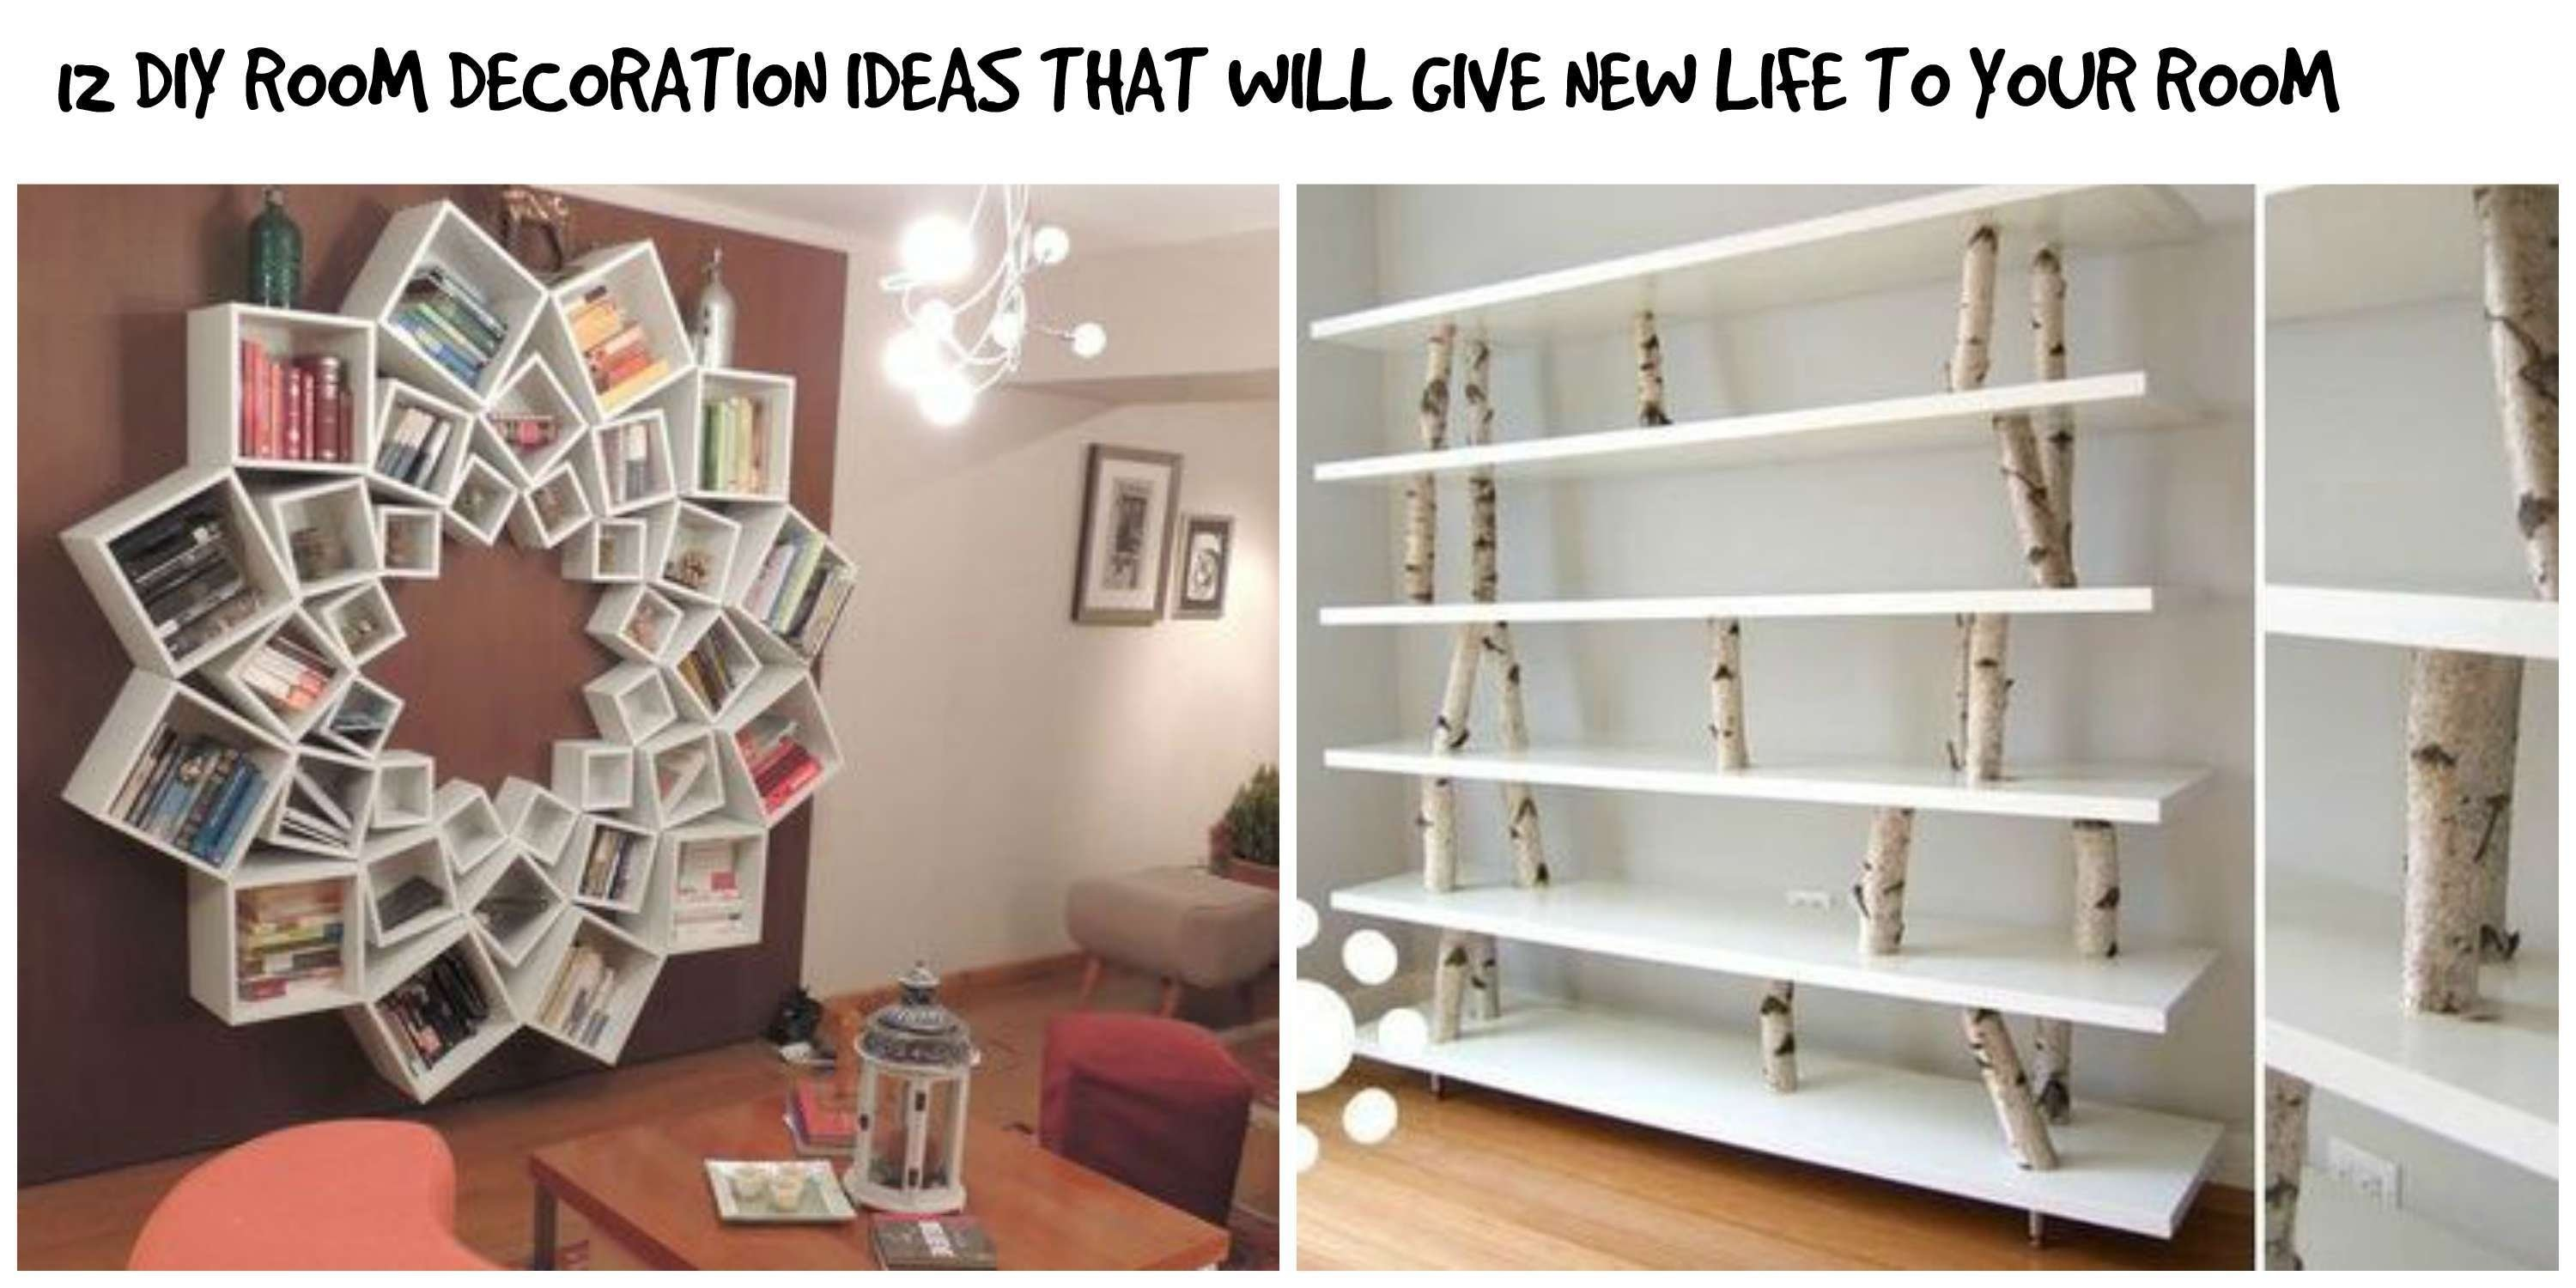 10 Cute Cute Ideas For Your Room ways decorate your room lentine marine 9535 2020